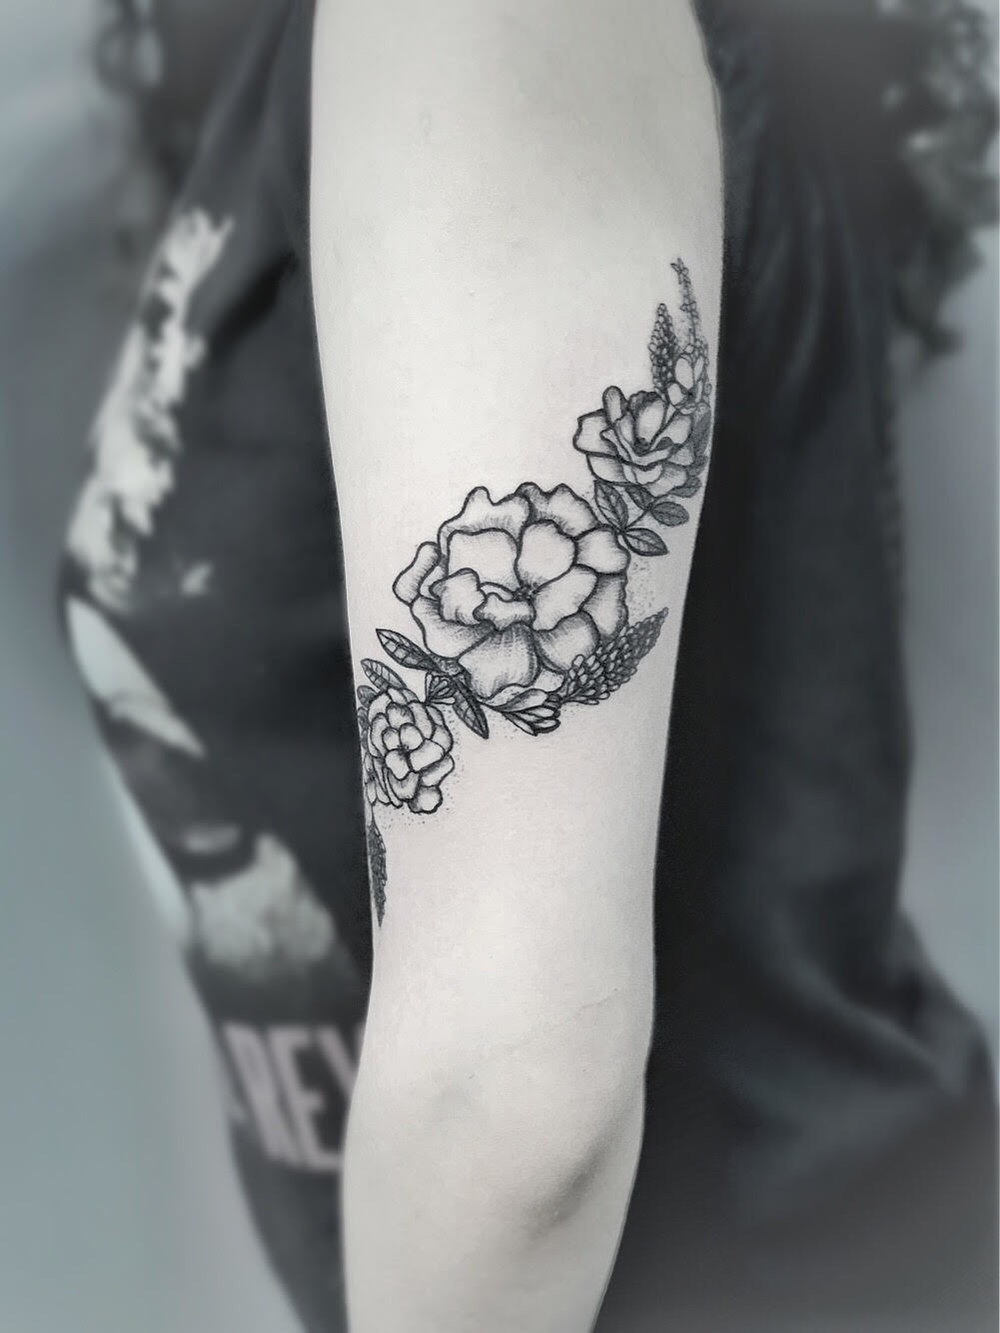 Custom Black and Grey Flowers Wrapping the arm Tattoo by Dani At Certified Tattoo Studios Denver Co.jpg